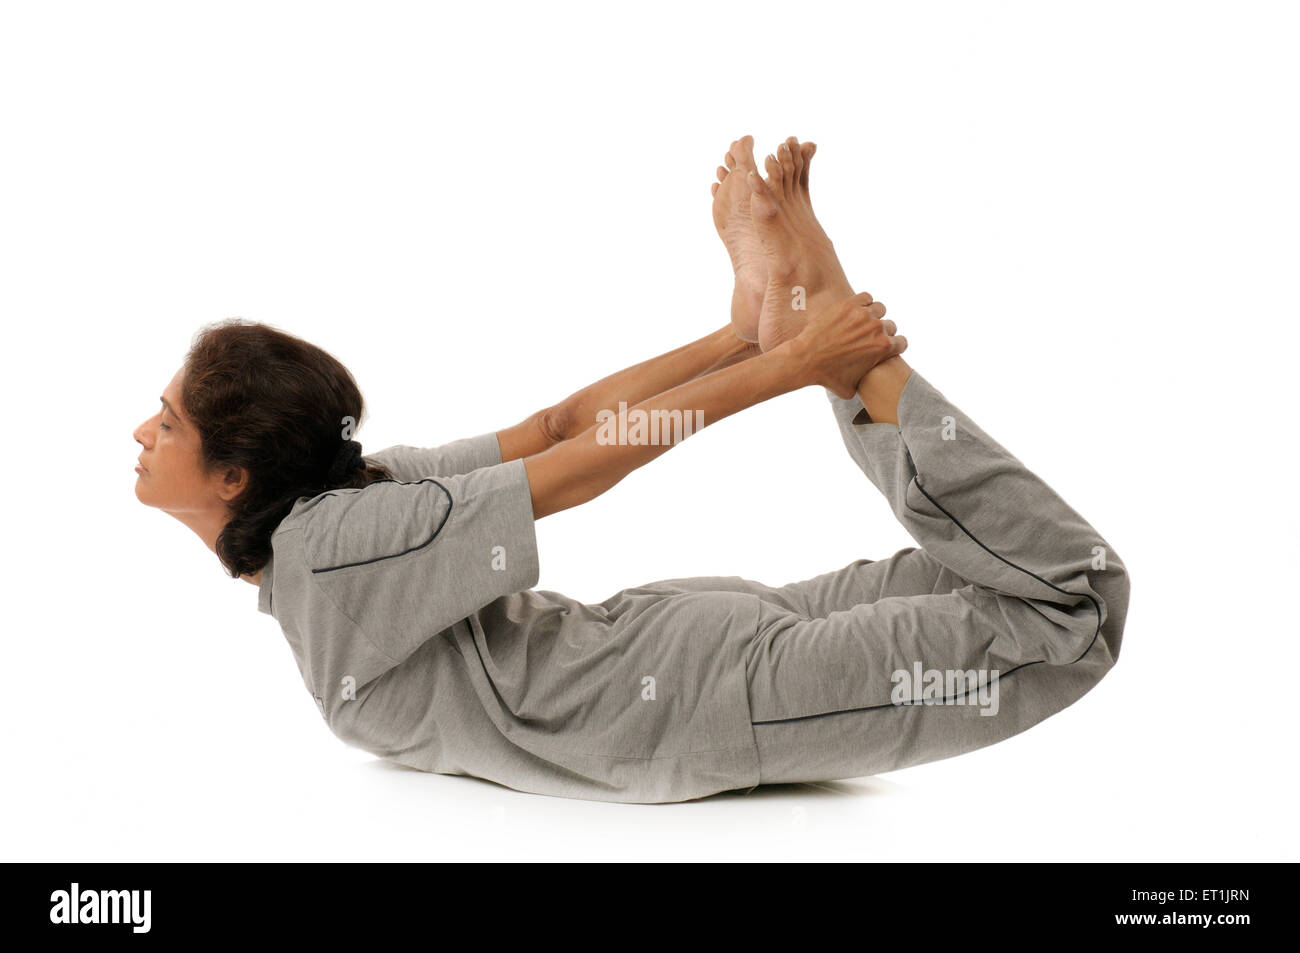 Lady doing yogic exercises dhanura asana MR#190 5 September 2009 - Stock Image